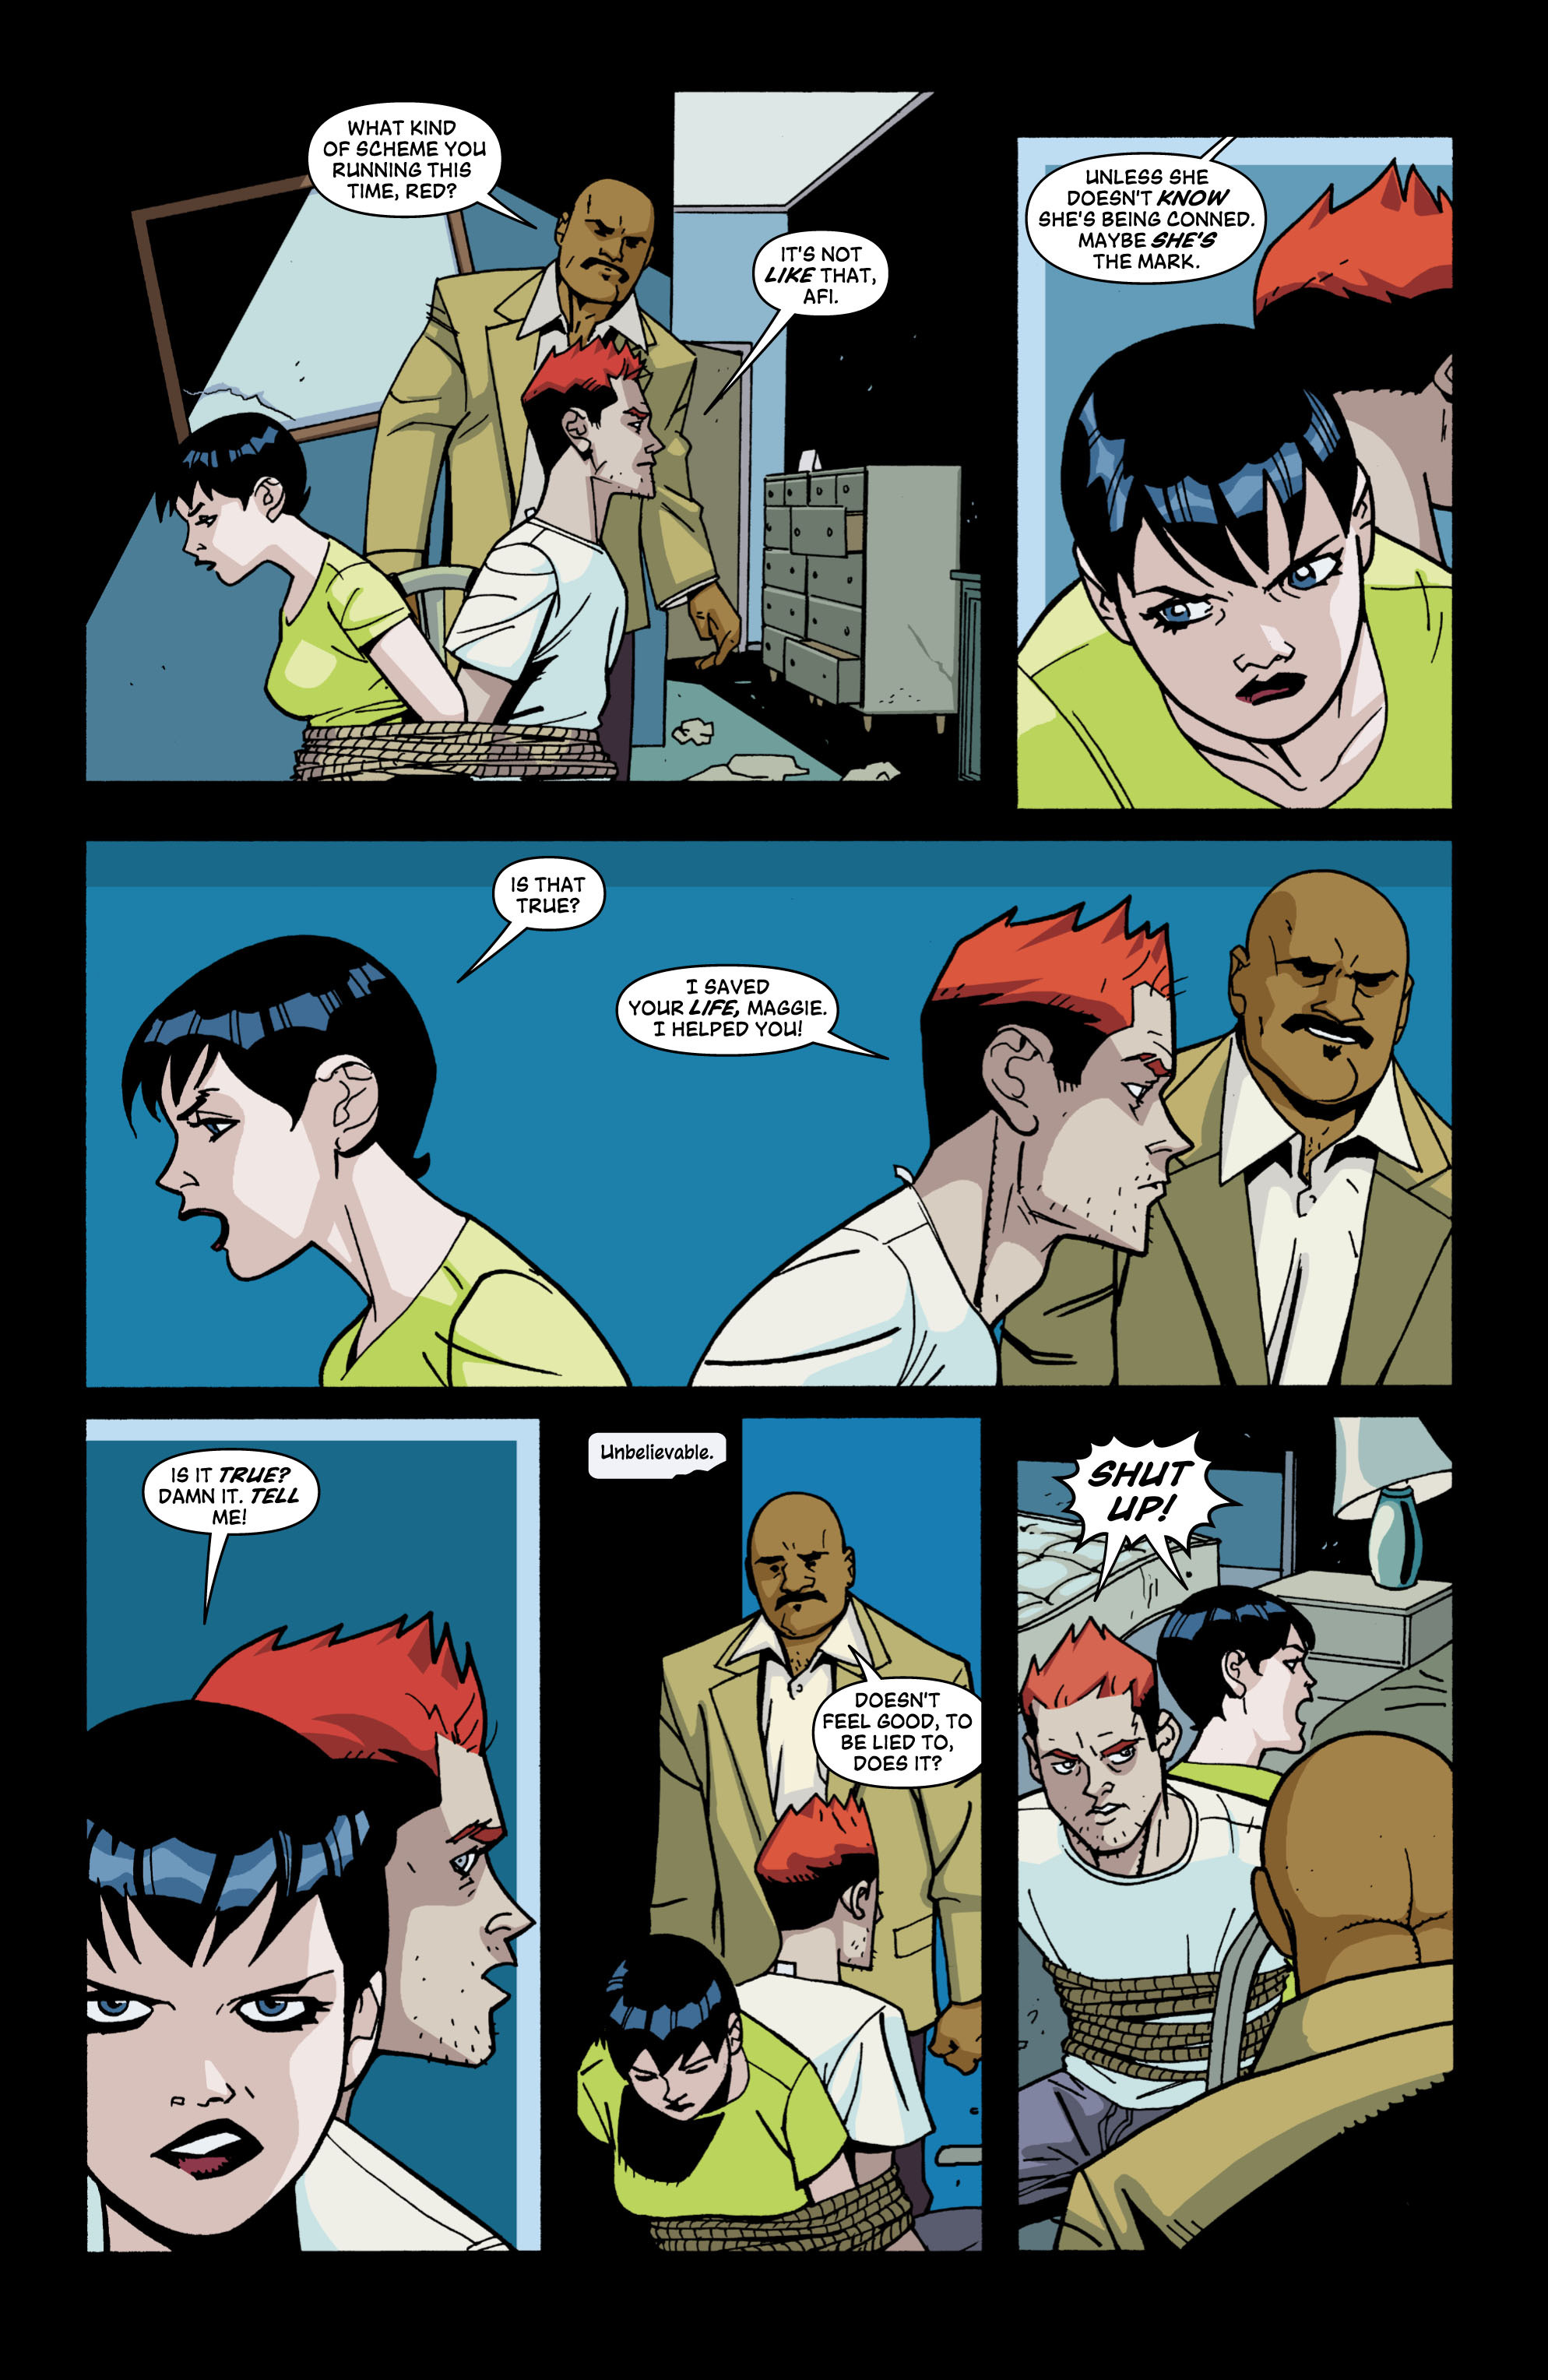 Read online Red Herring comic -  Issue #3 - 15